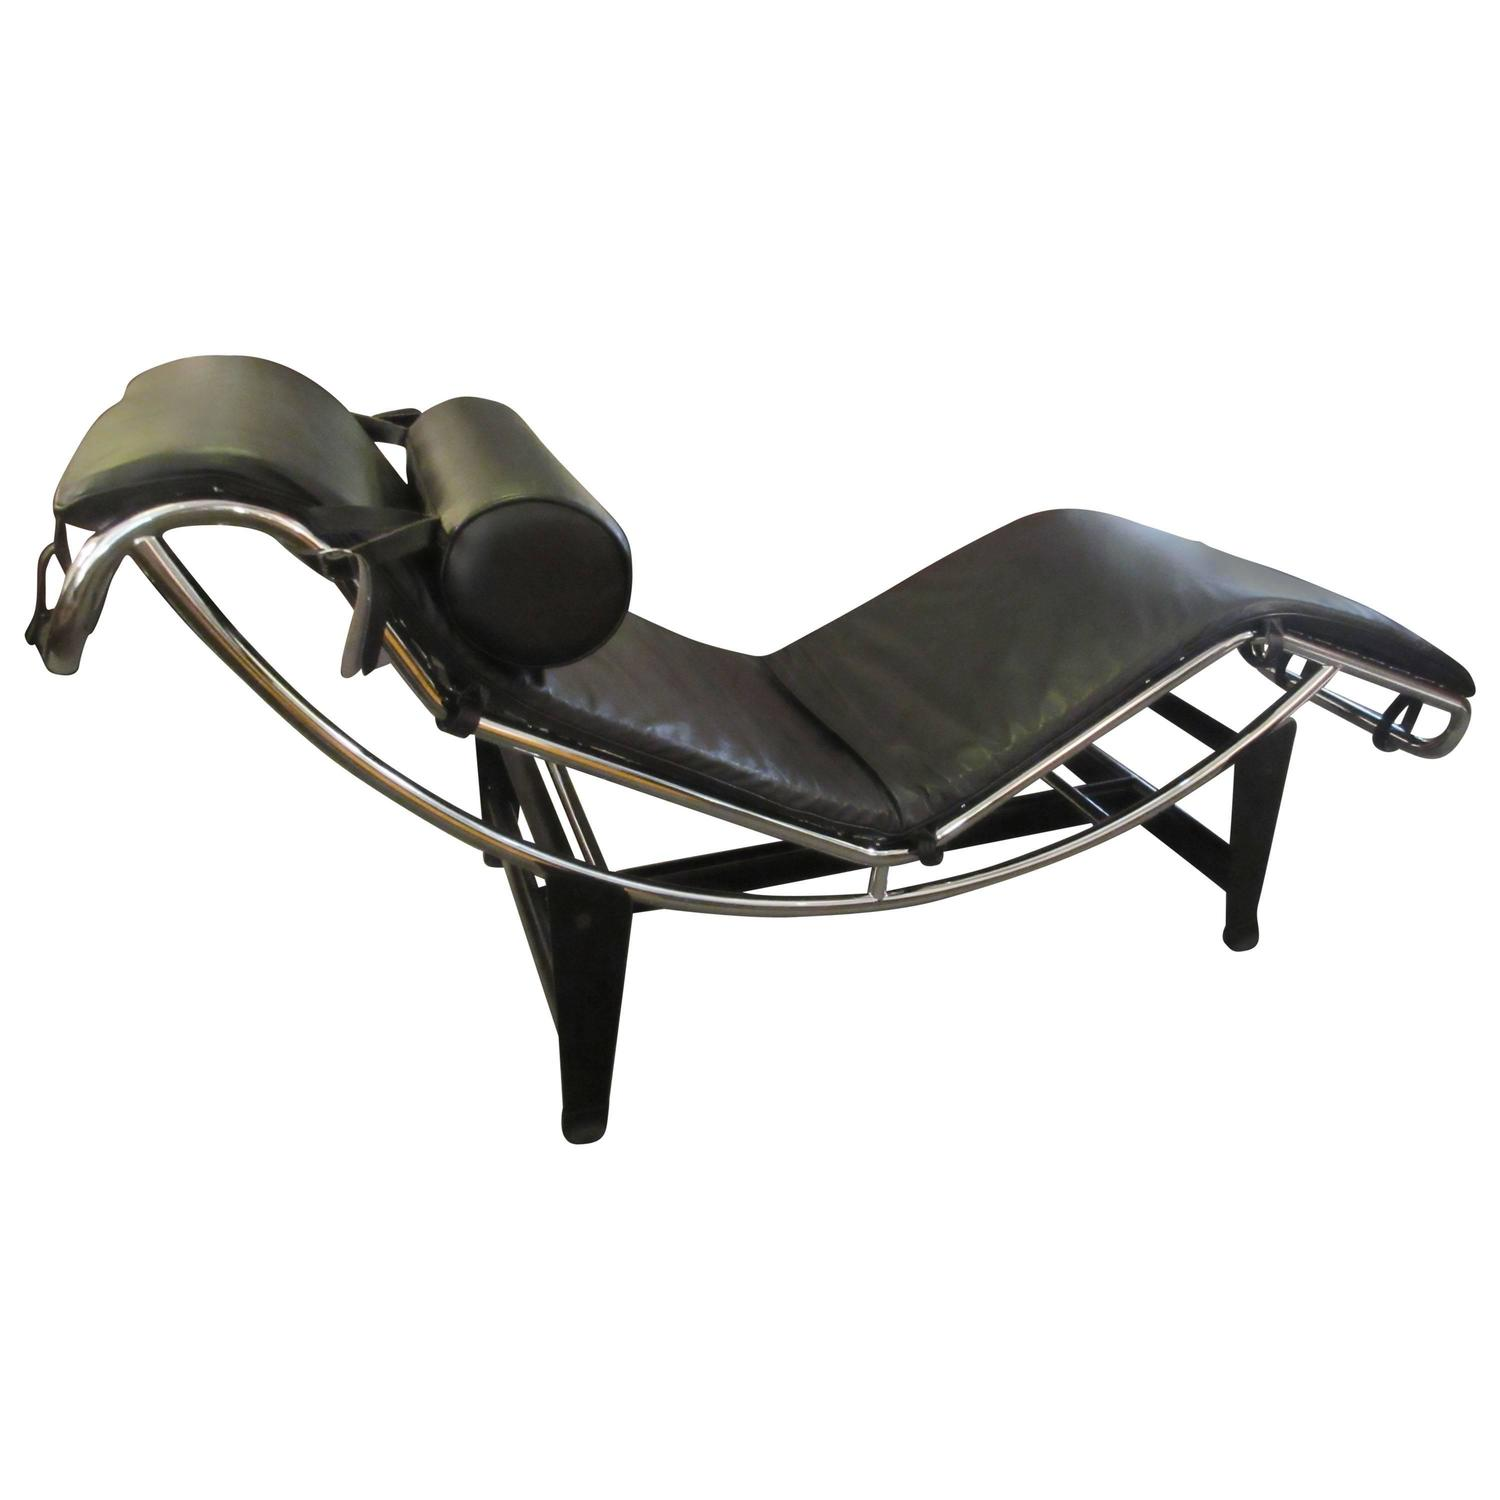 Le corbusier lc4 chrome and leather chaise longue at 1stdibs for Chaise longue by le corbusier